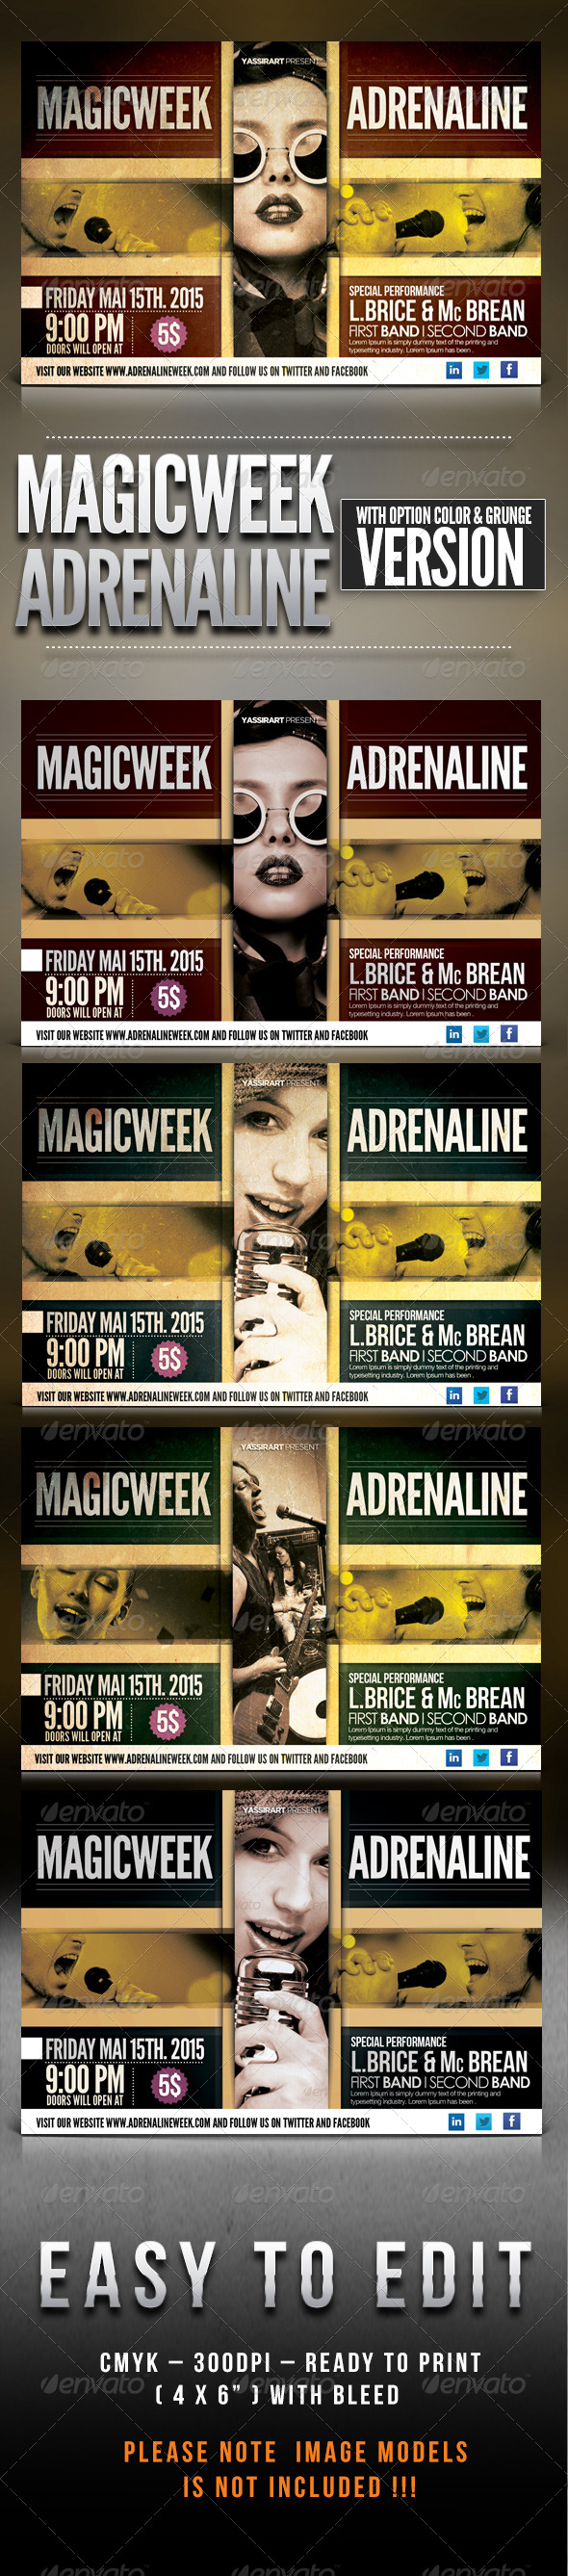 Magic Week Adrenaline Flyer Template - Clubs & Parties Events